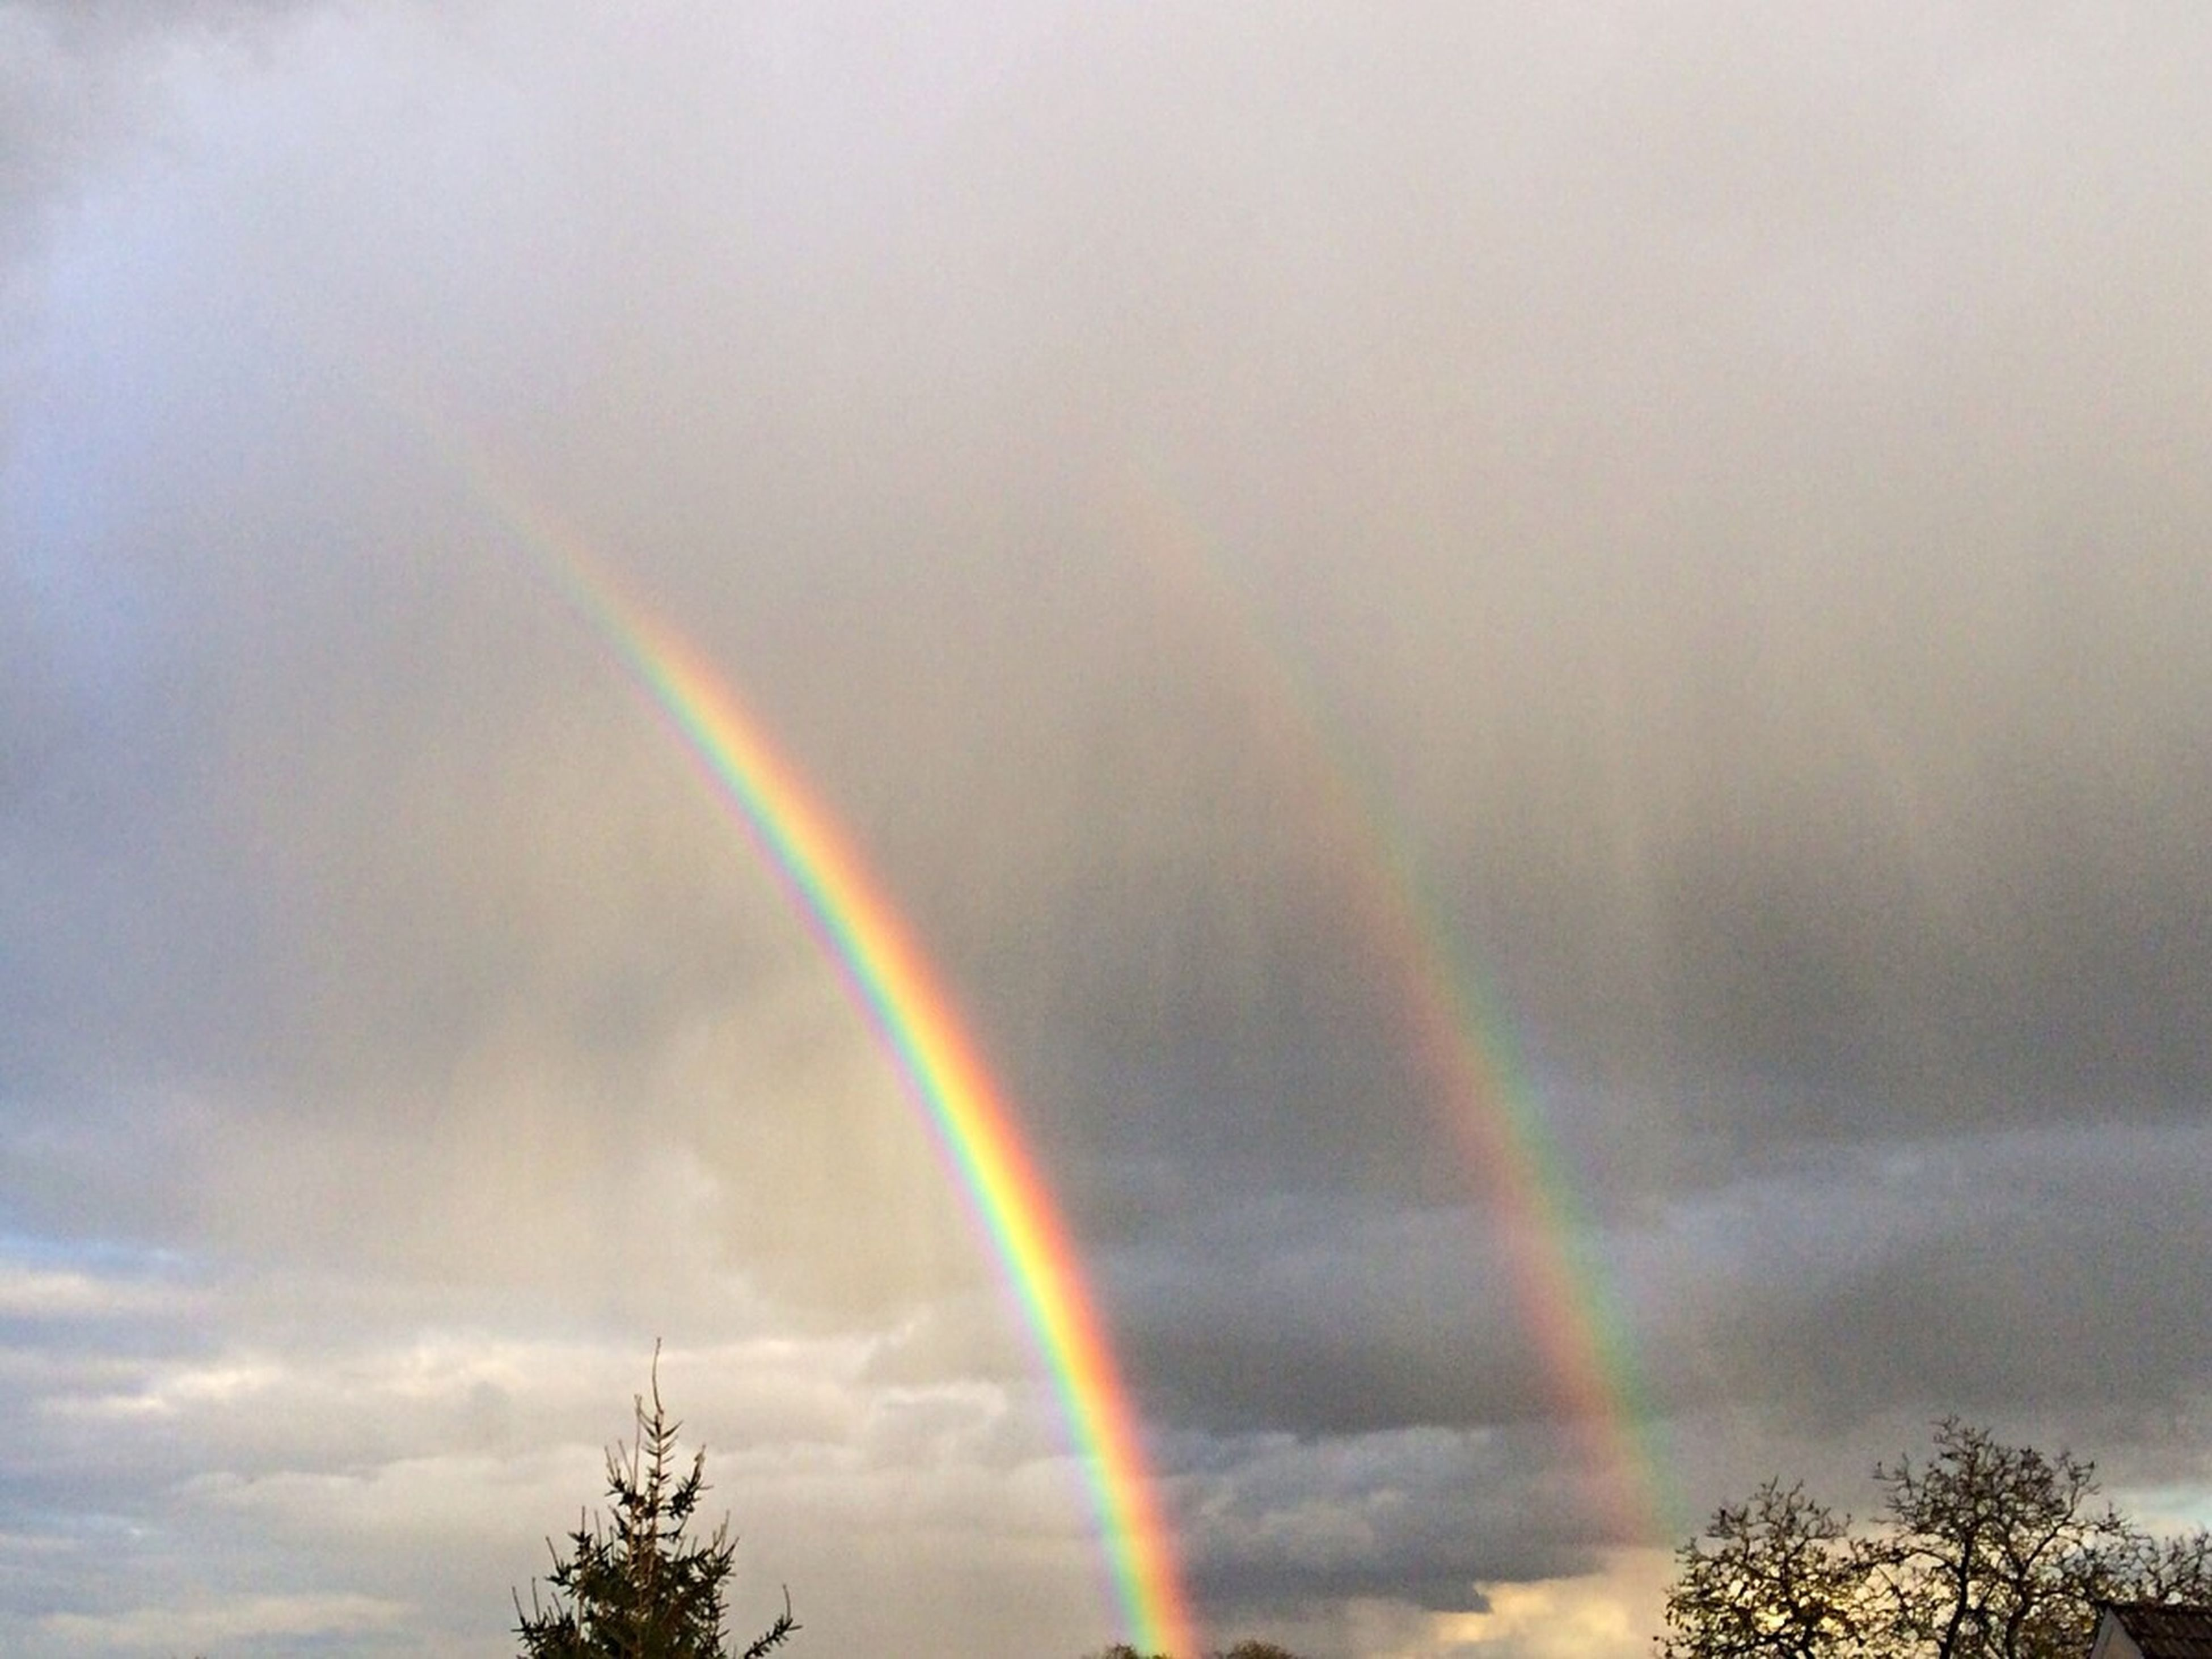 rainbow, low angle view, sky, tree, multi colored, cloud - sky, beauty in nature, scenics, weather, cloudy, tranquility, nature, overcast, tranquil scene, idyllic, treetop, atmospheric mood, dramatic sky, outdoors, no people